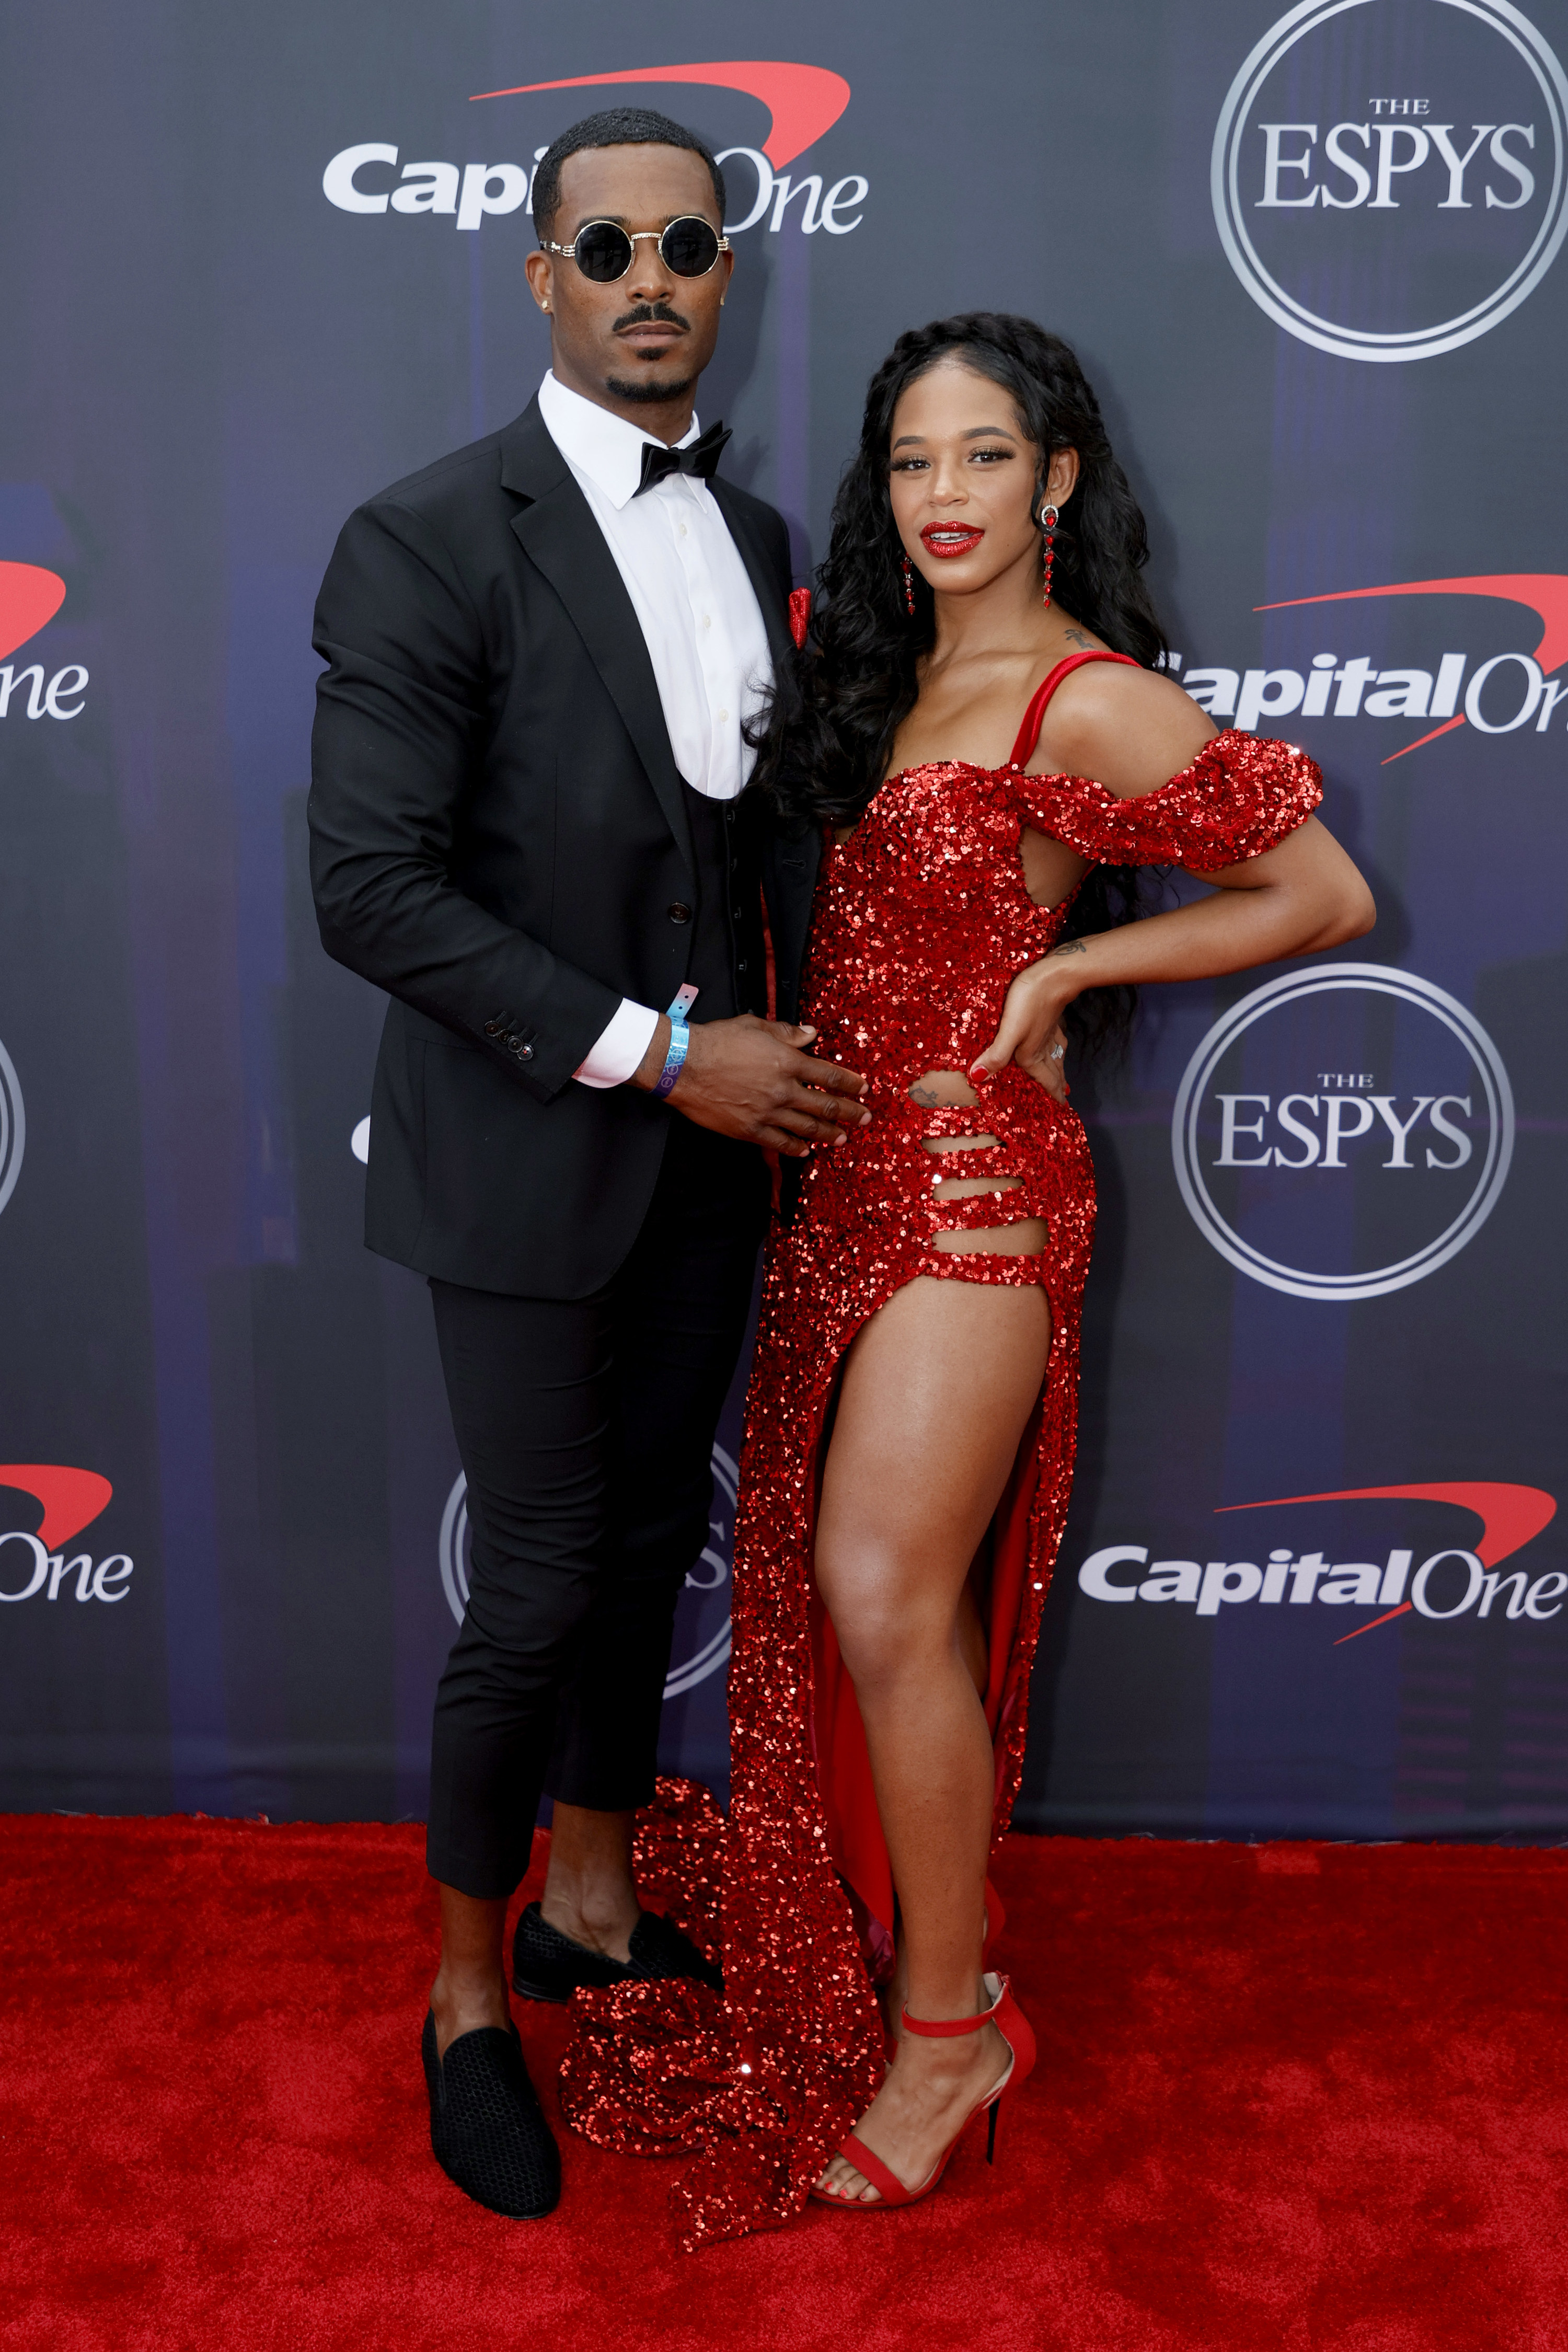 Montez wore a suit with high-water pants and Bianca wore a sequined gown